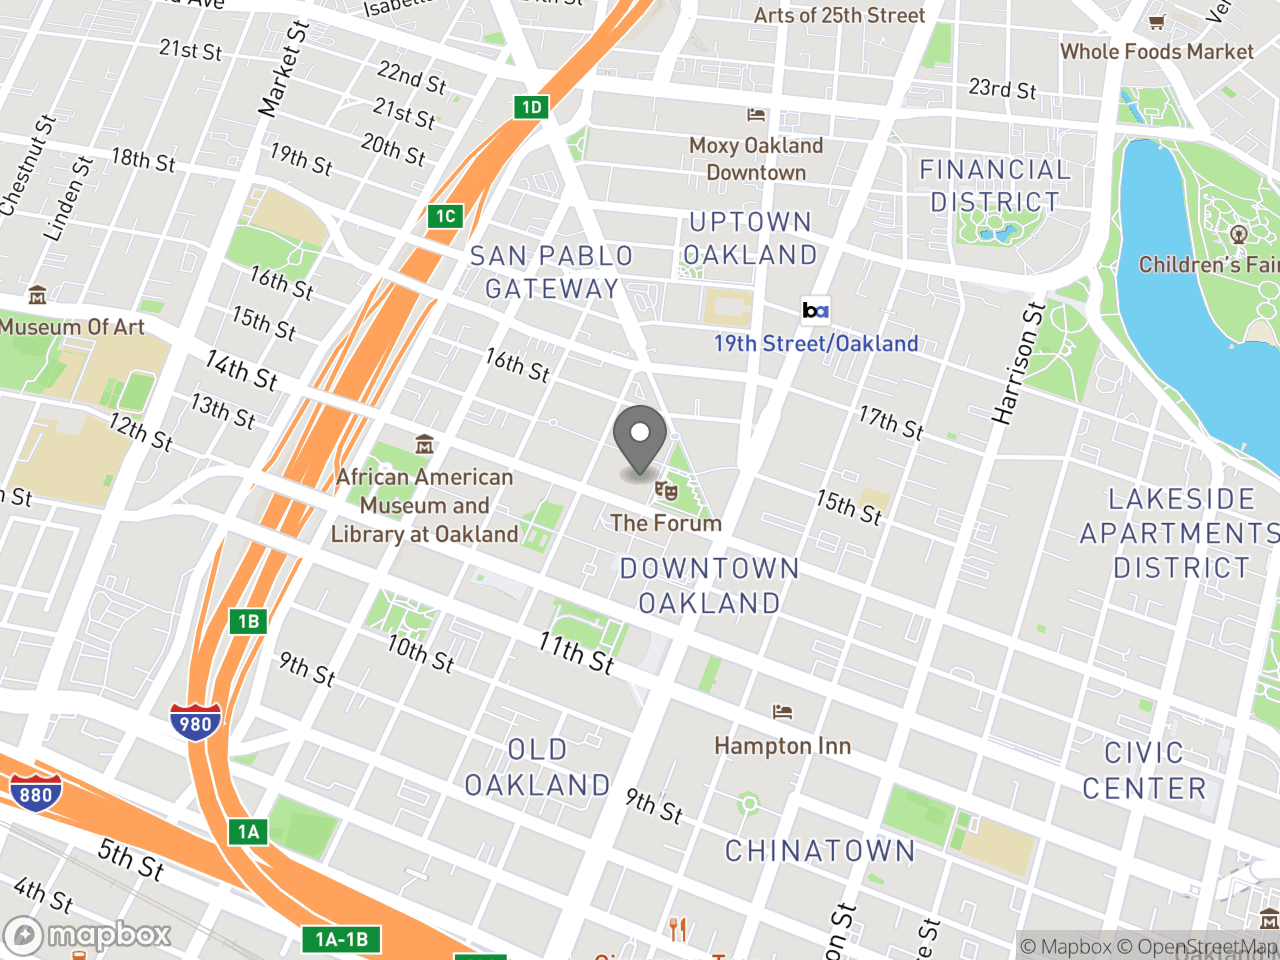 Map image for Oakland Workforce Development Board Meeting - May 2, 2019 (Award Recommendations), located at 1 Frank H Ogawa Plaza in Oakland, CA 94612